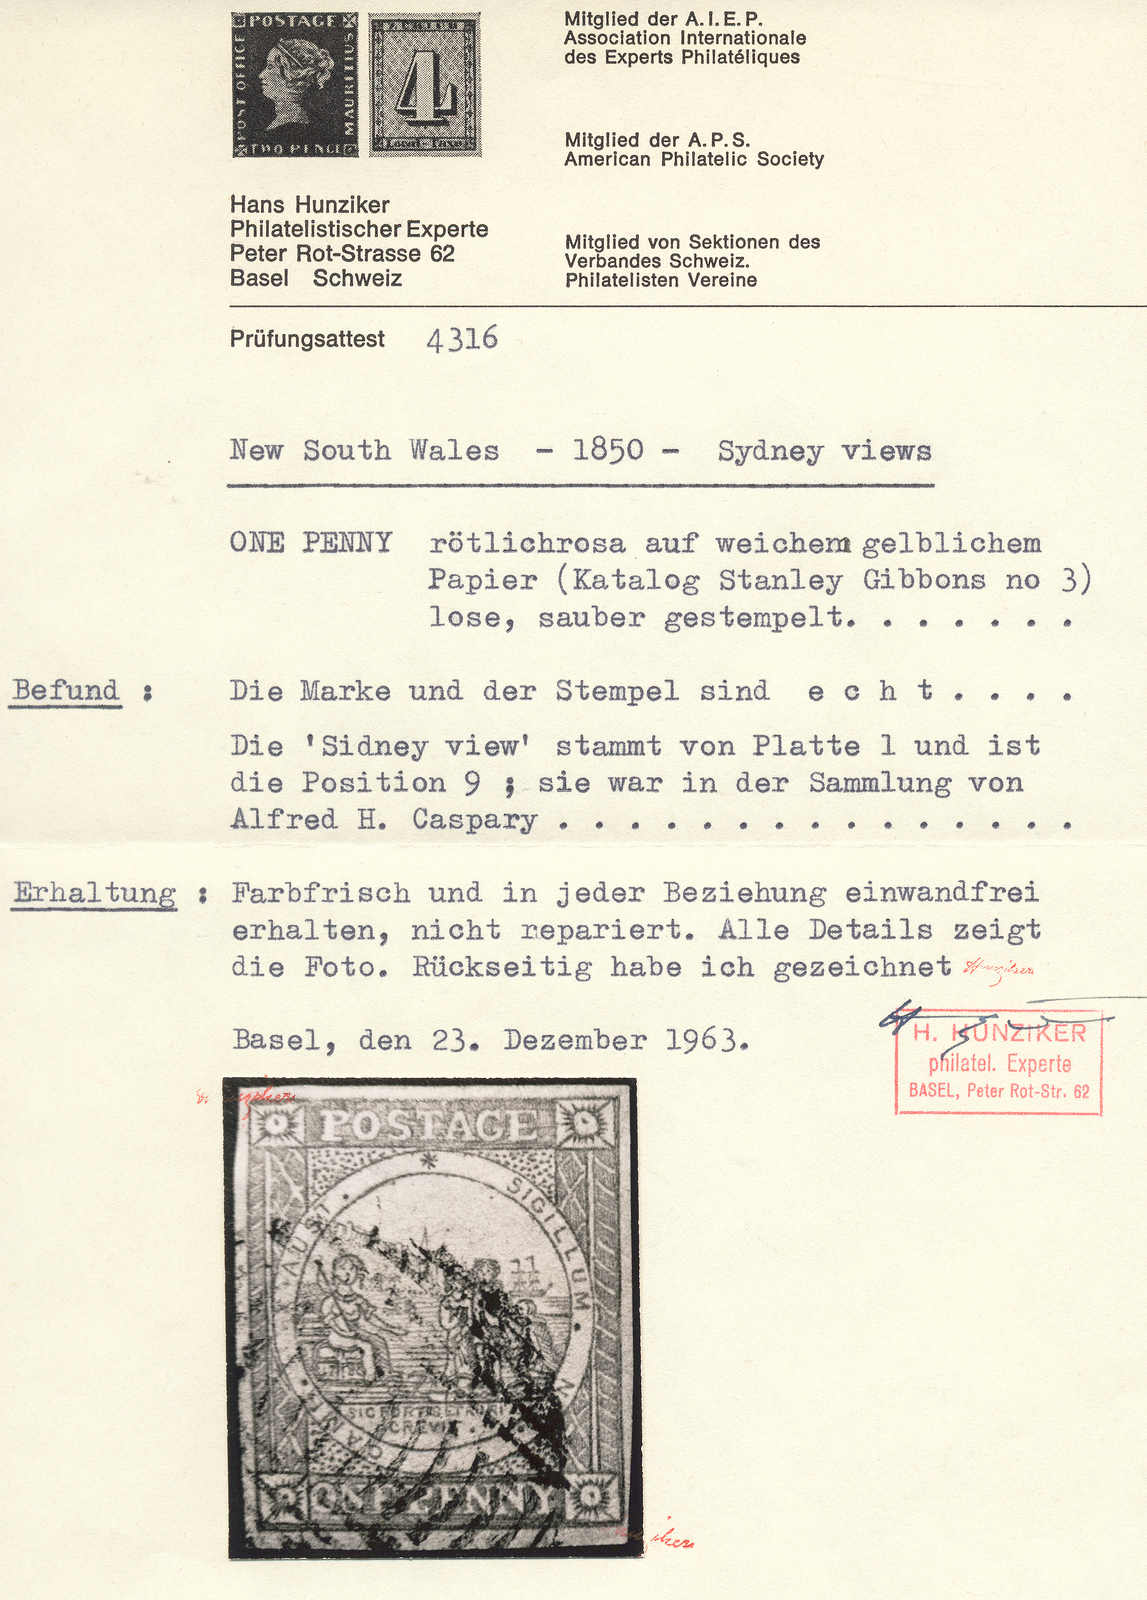 Lot 10002 - andere gebiete neusuedwales -  classicphil GmbH 6'th classicphil Auction - Day 1